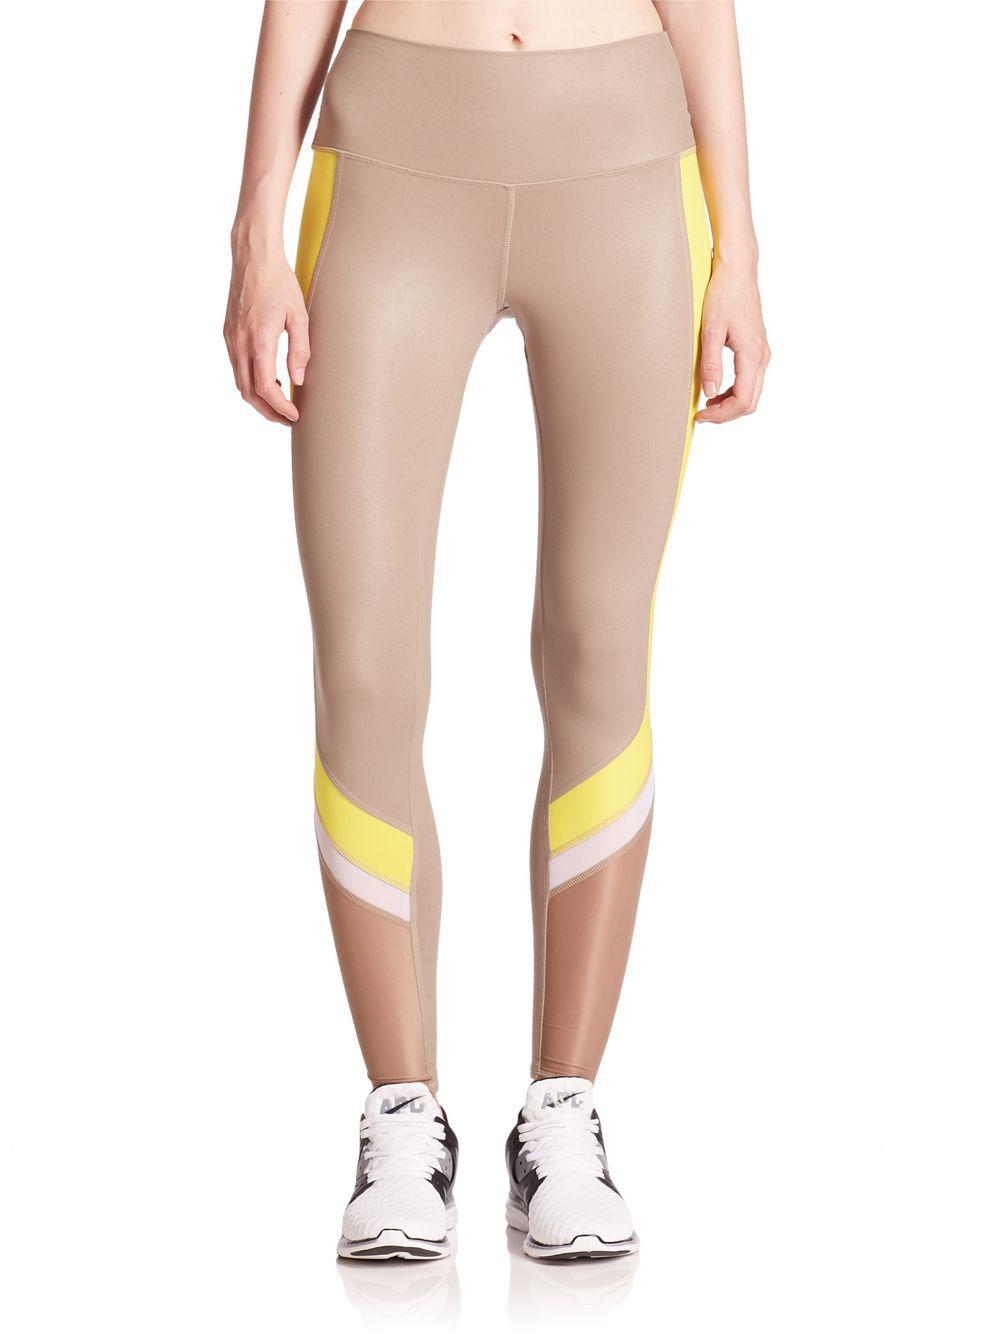 bff51913b00c5a Alo Yoga Elevate Paneled Leggings in Natural - Lyst